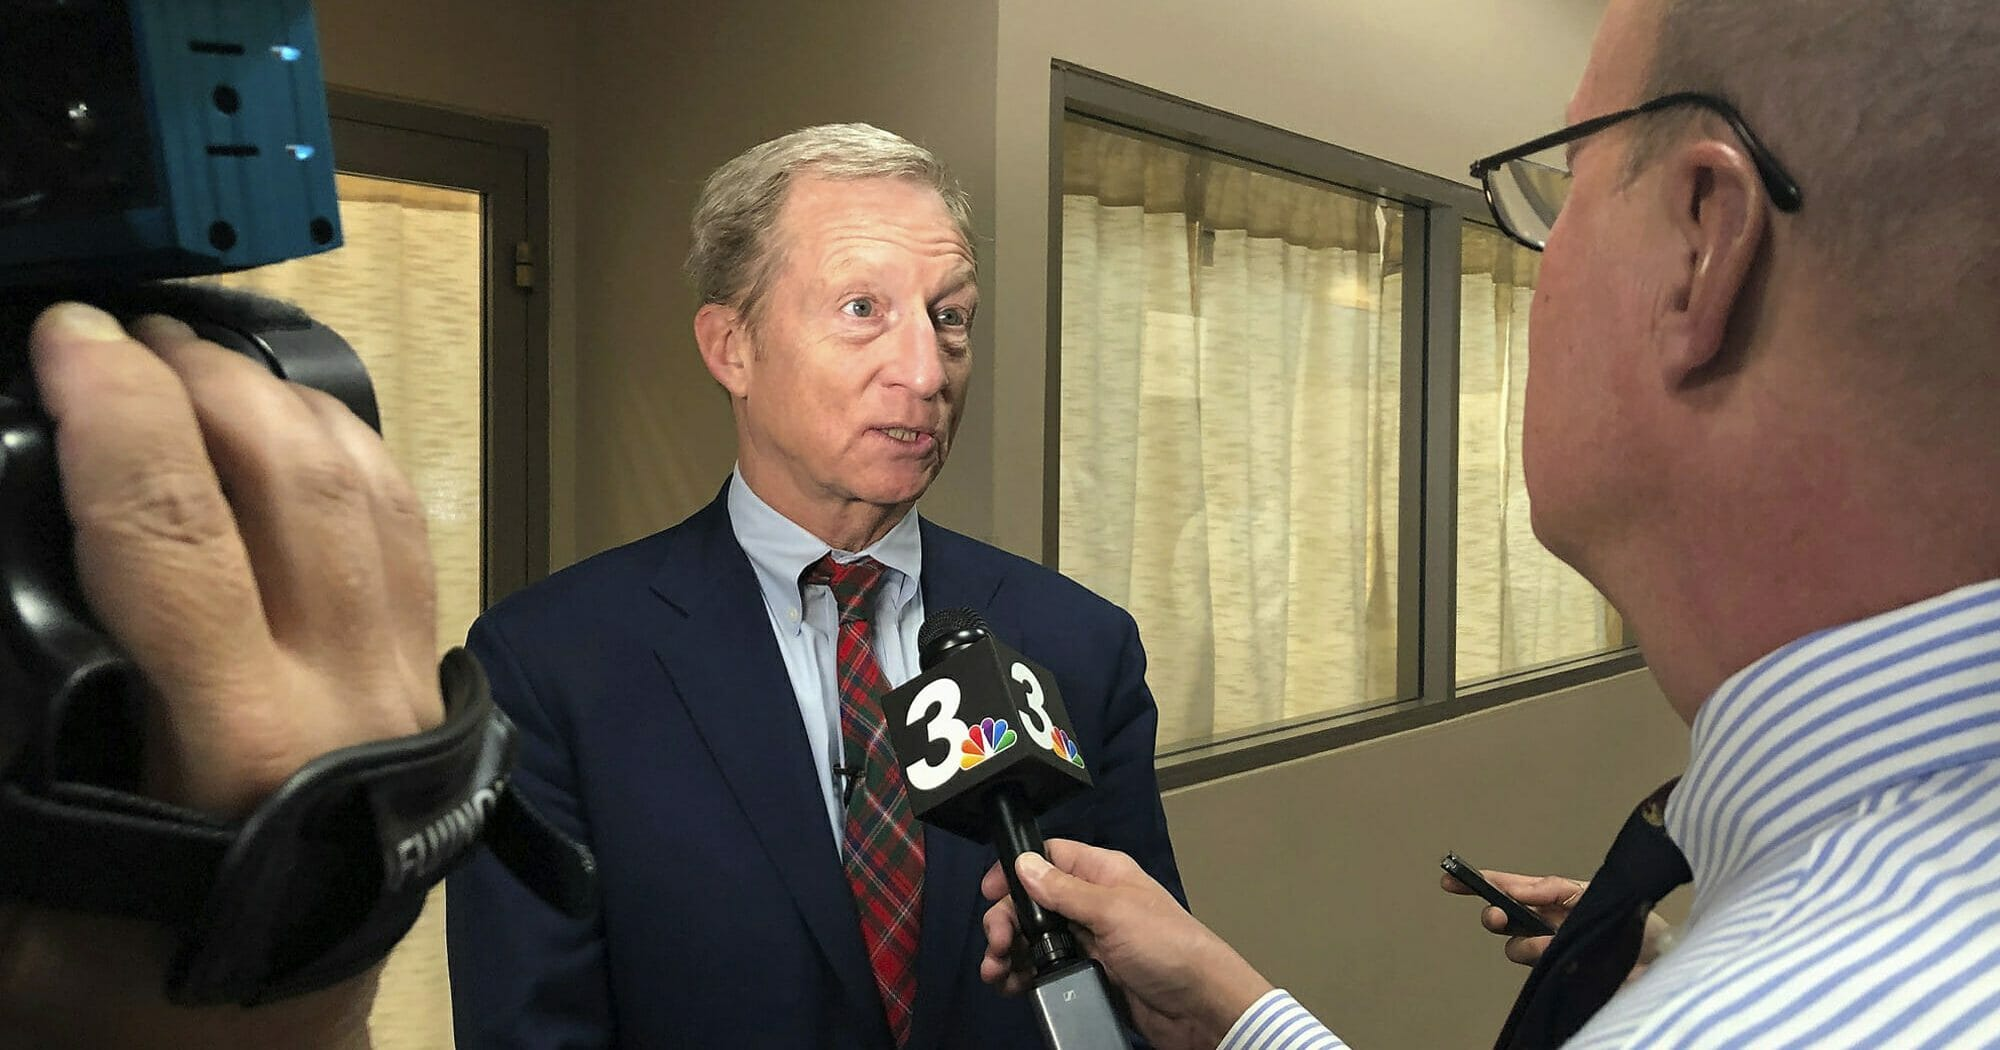 Democratic presidential candidate Tom Steyer speaks to reporters before hosting a town hall in Henderson, Nevada, on Nov. 4, 2019.